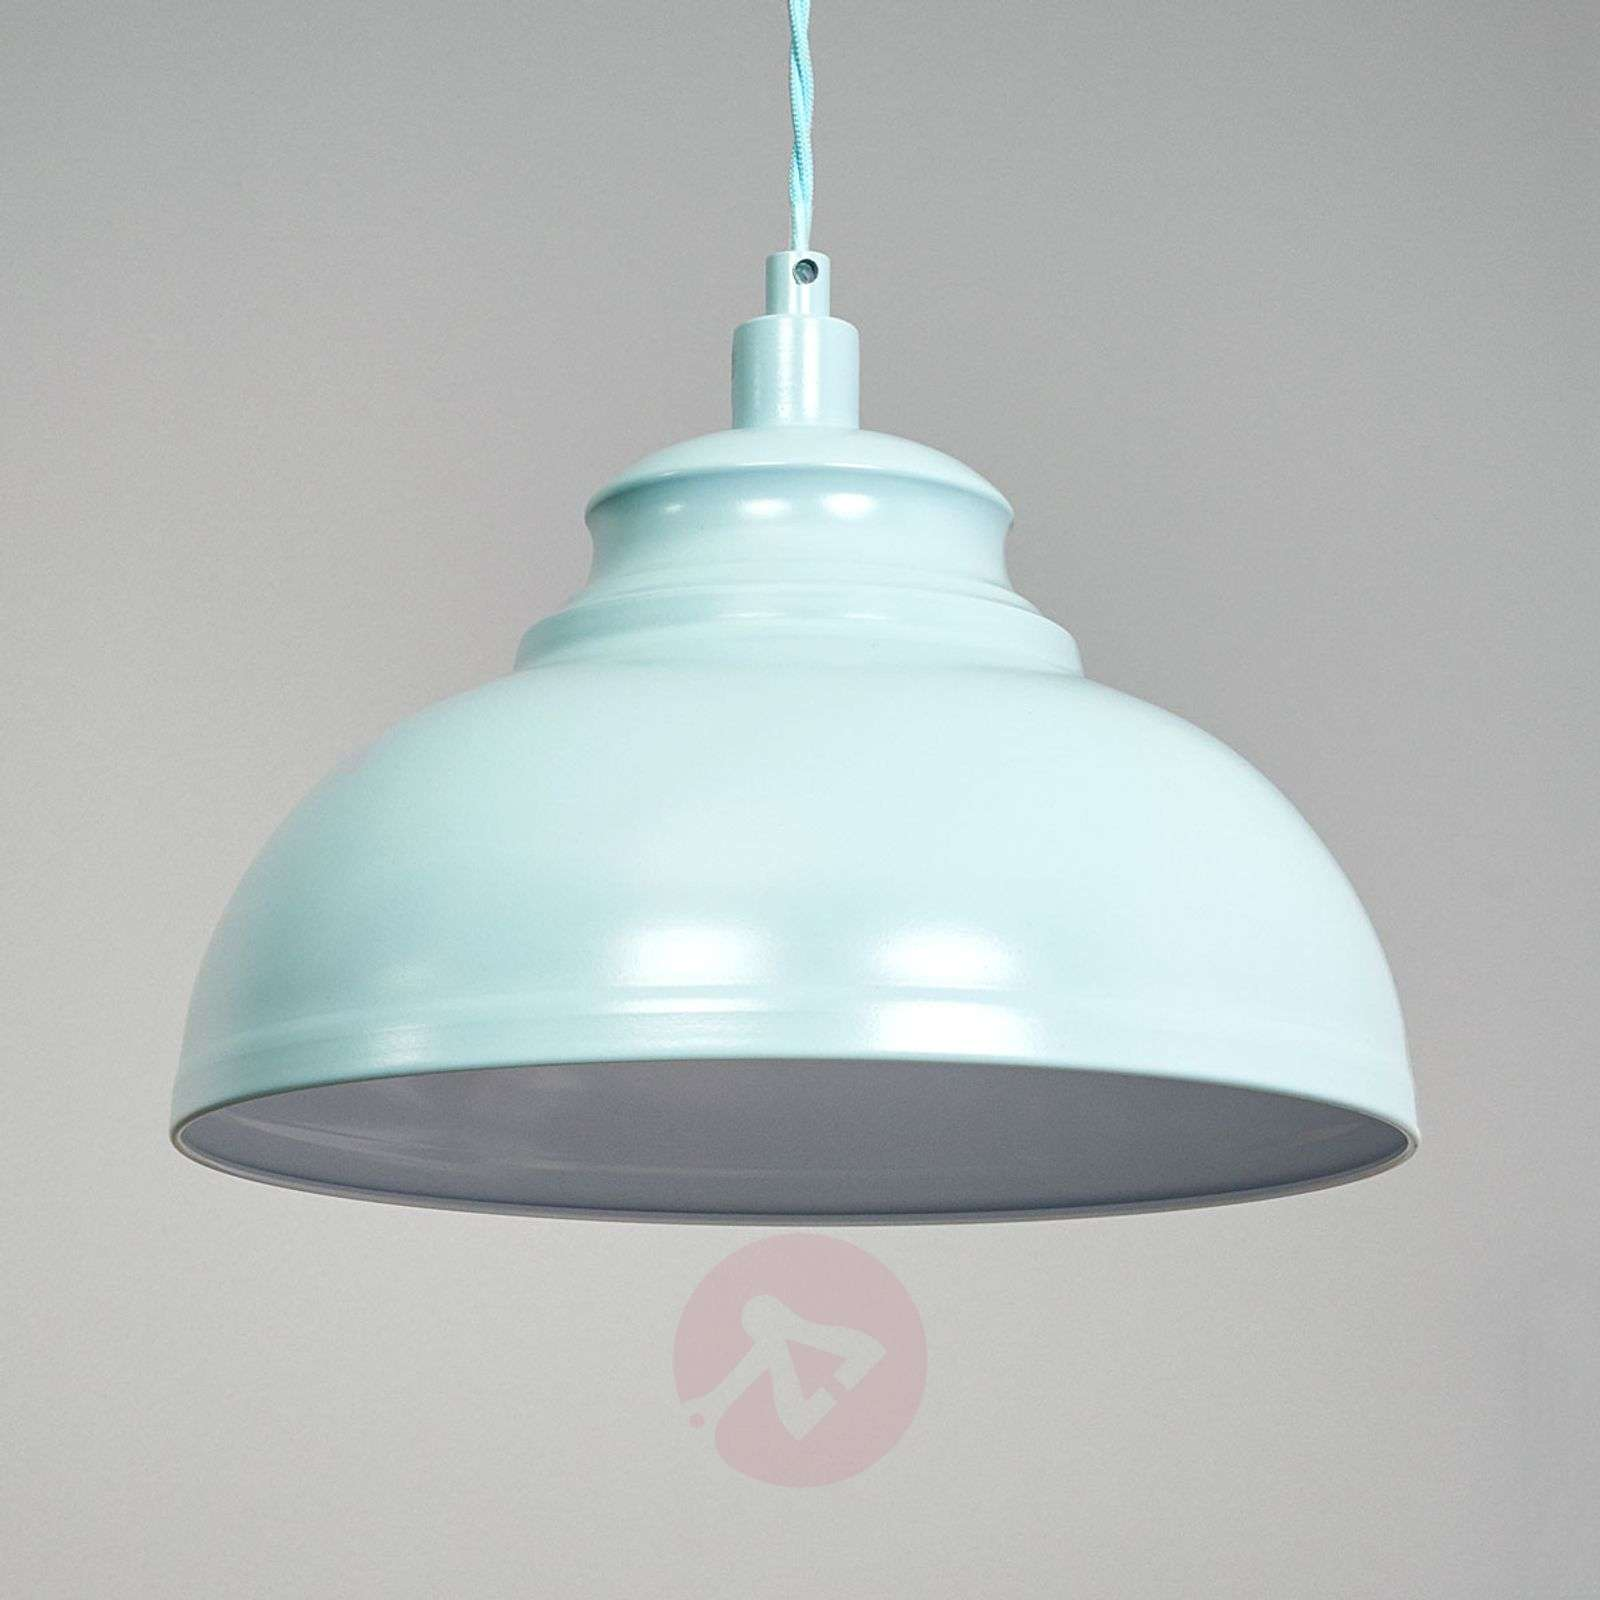 Isla a hanging light in a soft blue colour-6054992-01